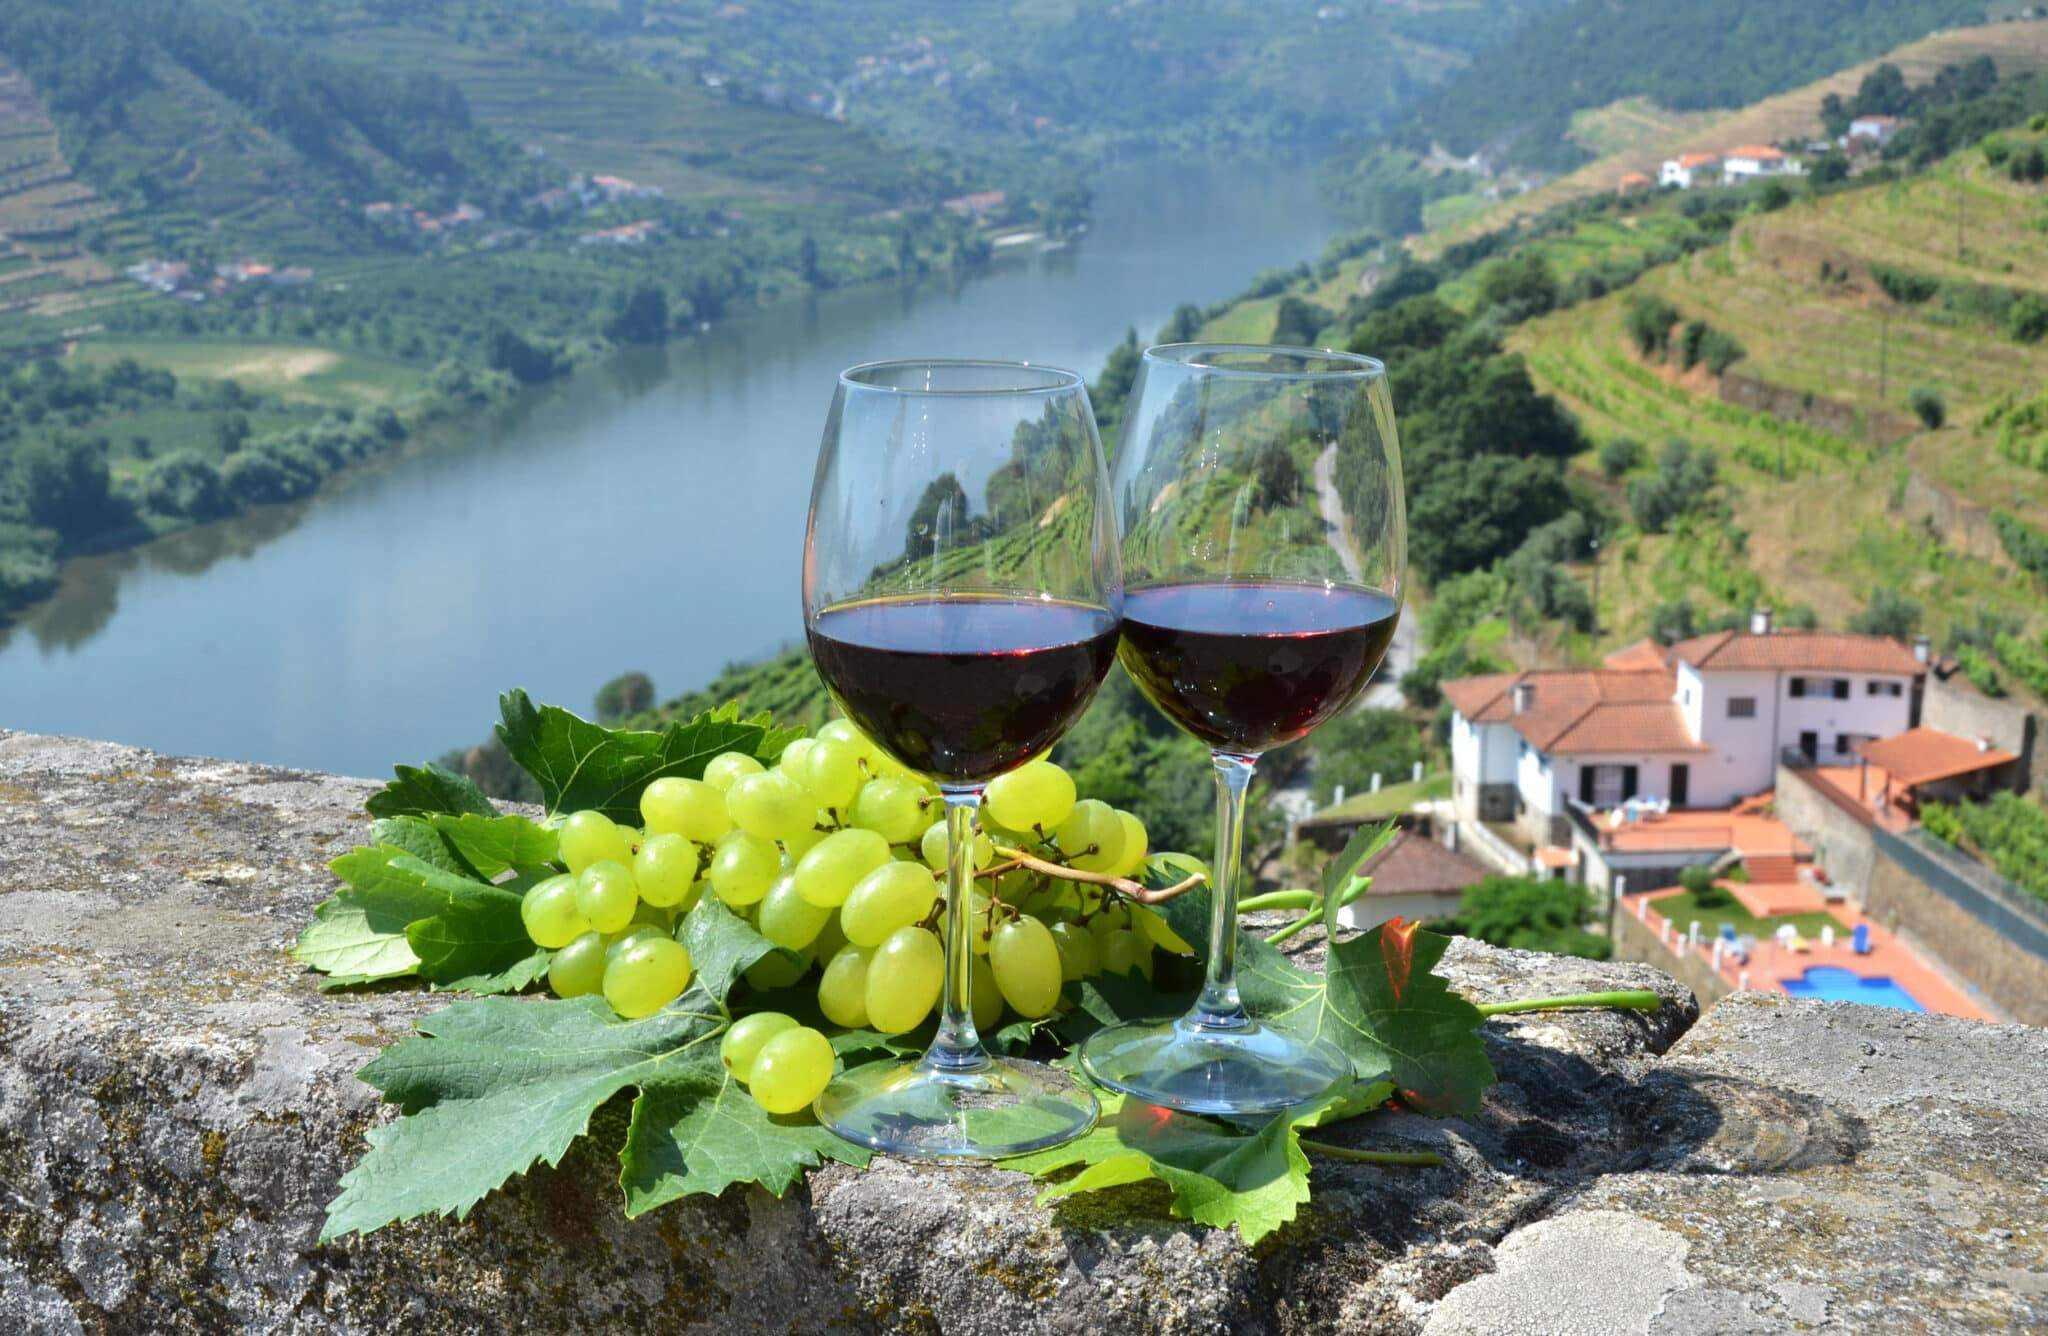 Wine glasses against vineyards in Douro Valley, Portugal